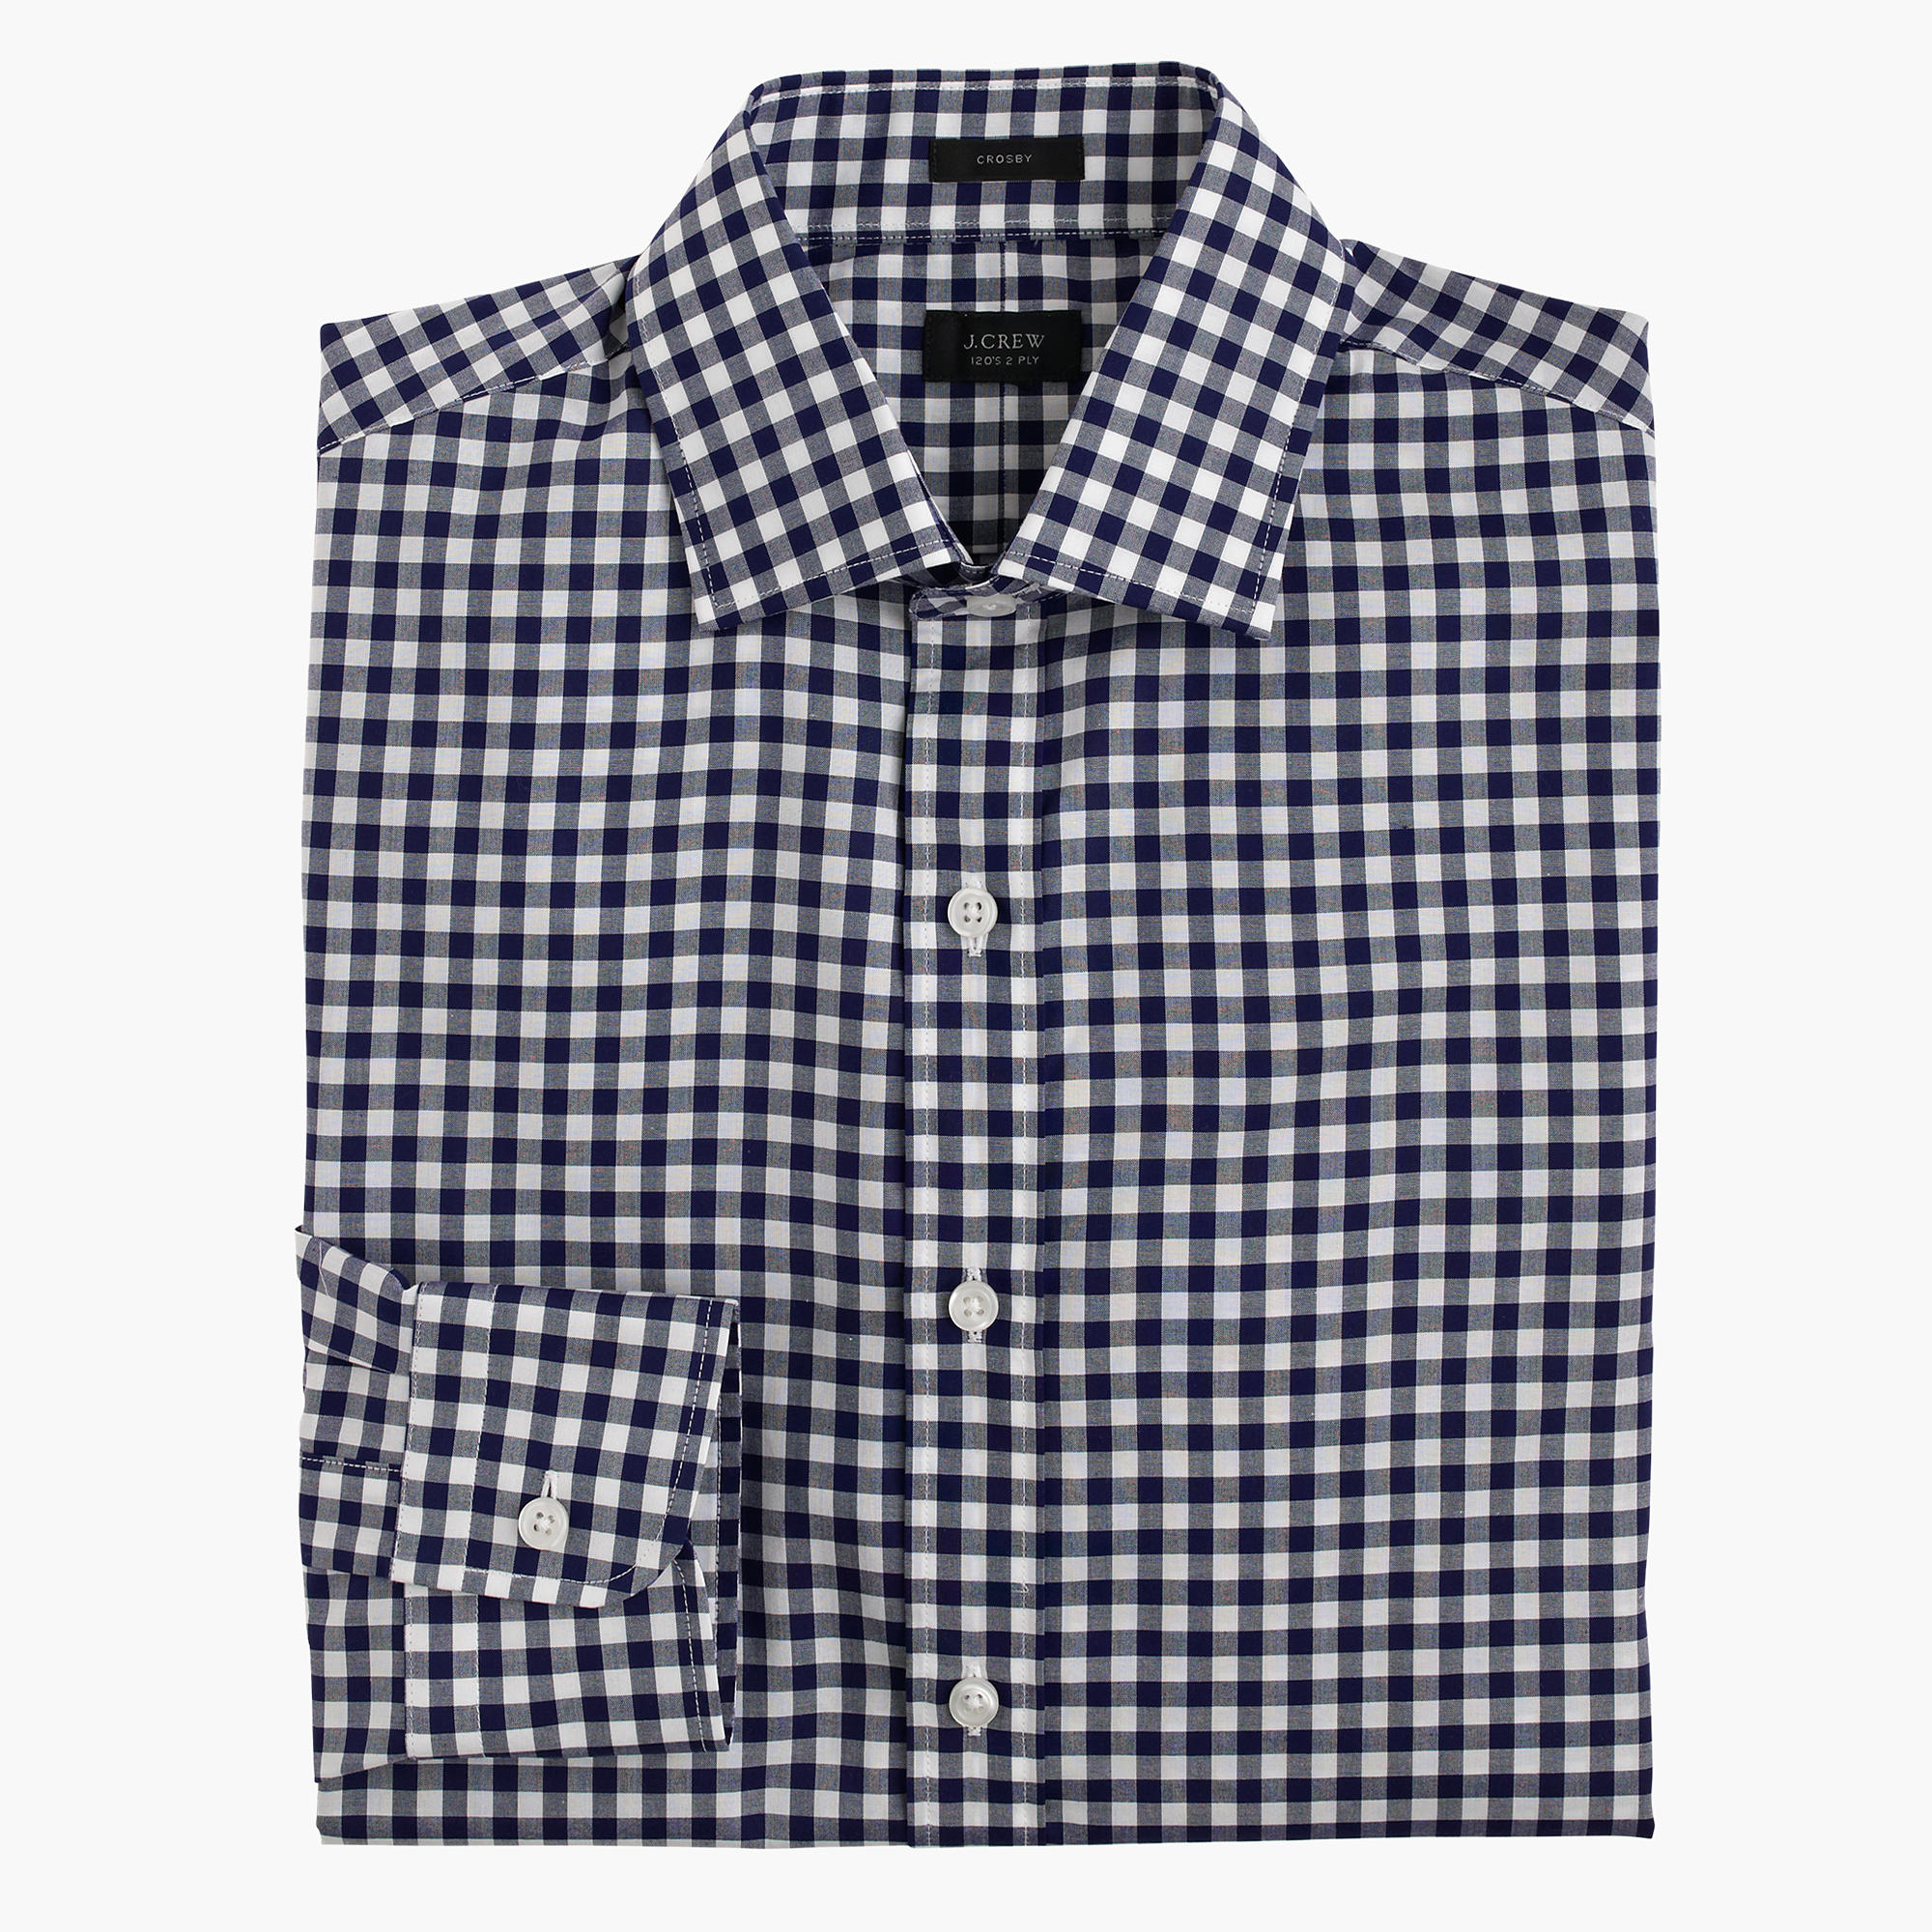 Crosby Classic-fit shirt in navy gingham